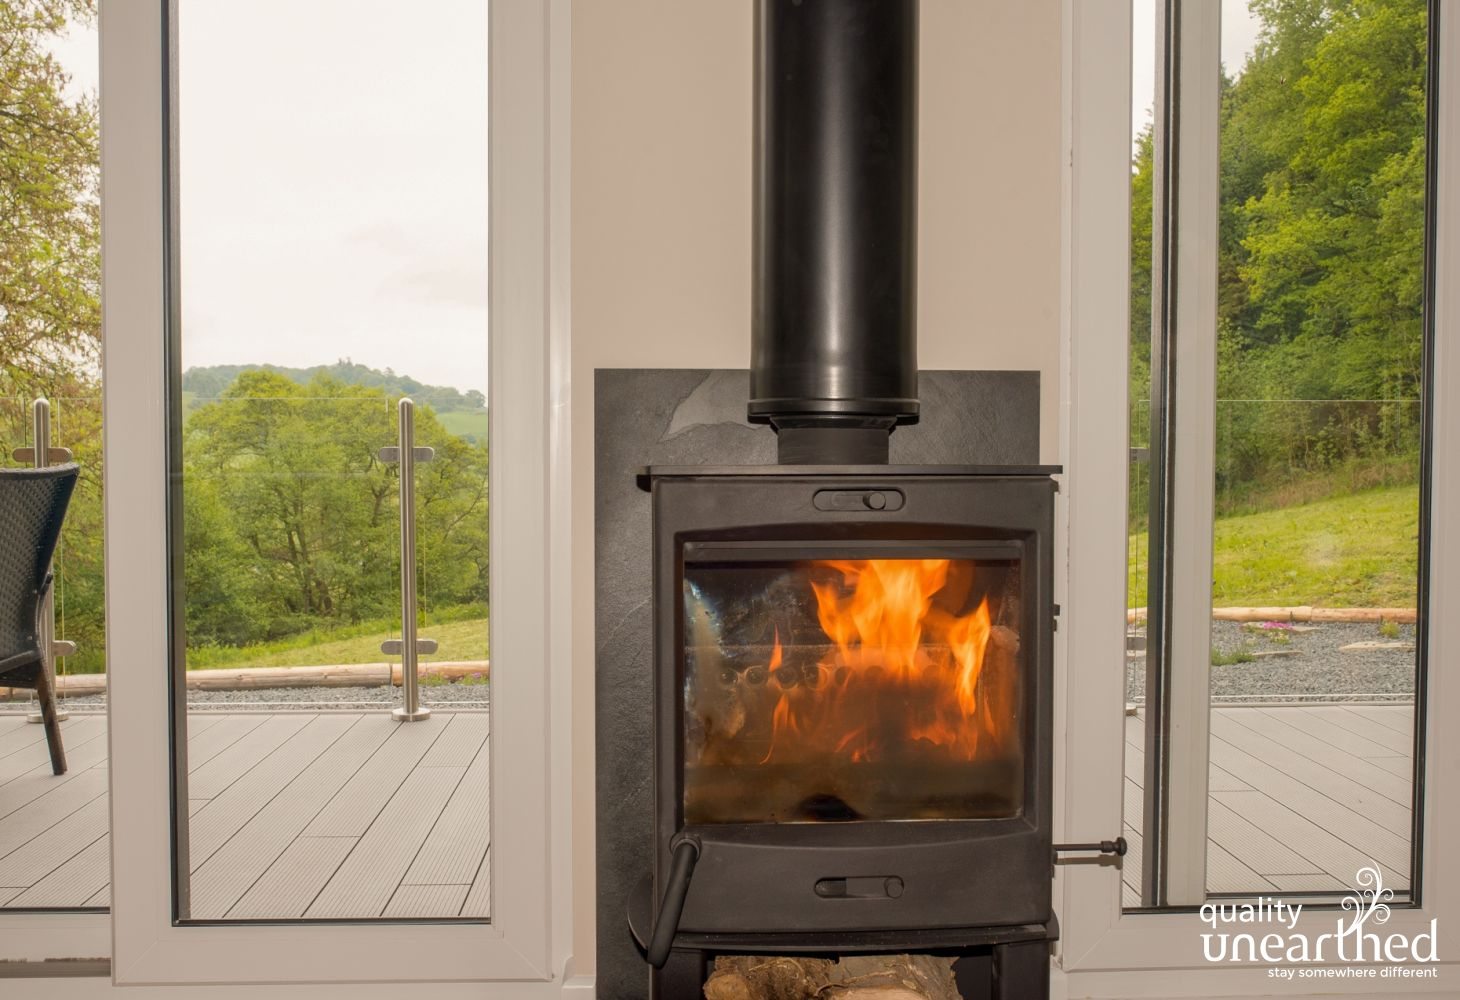 The flames of the fire burner flicker in the cabin, with the Mid Wales countryside near Newton in the background